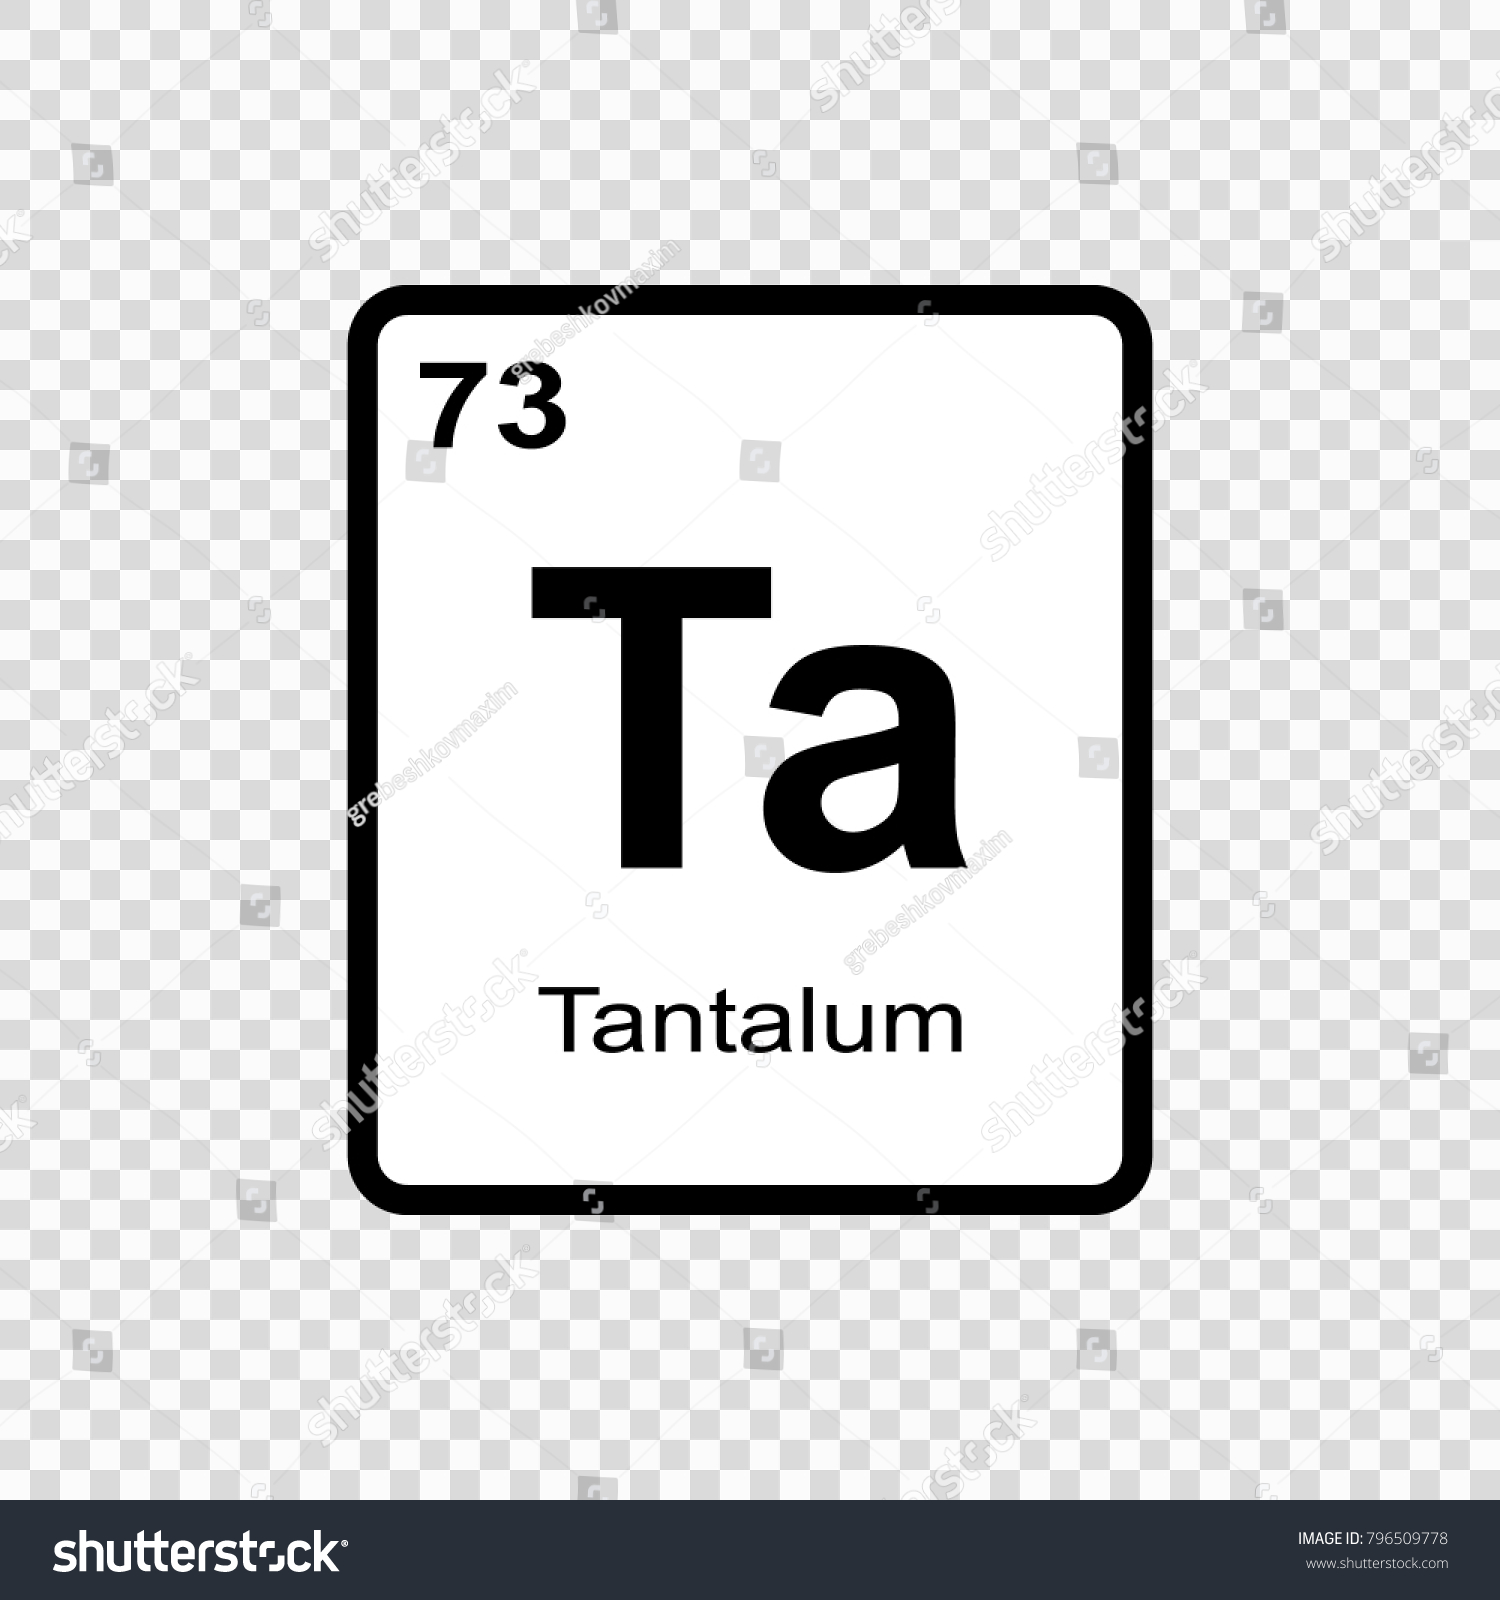 Tantalum Chemical Element Sign Atomic Number Stock Vector Royalty